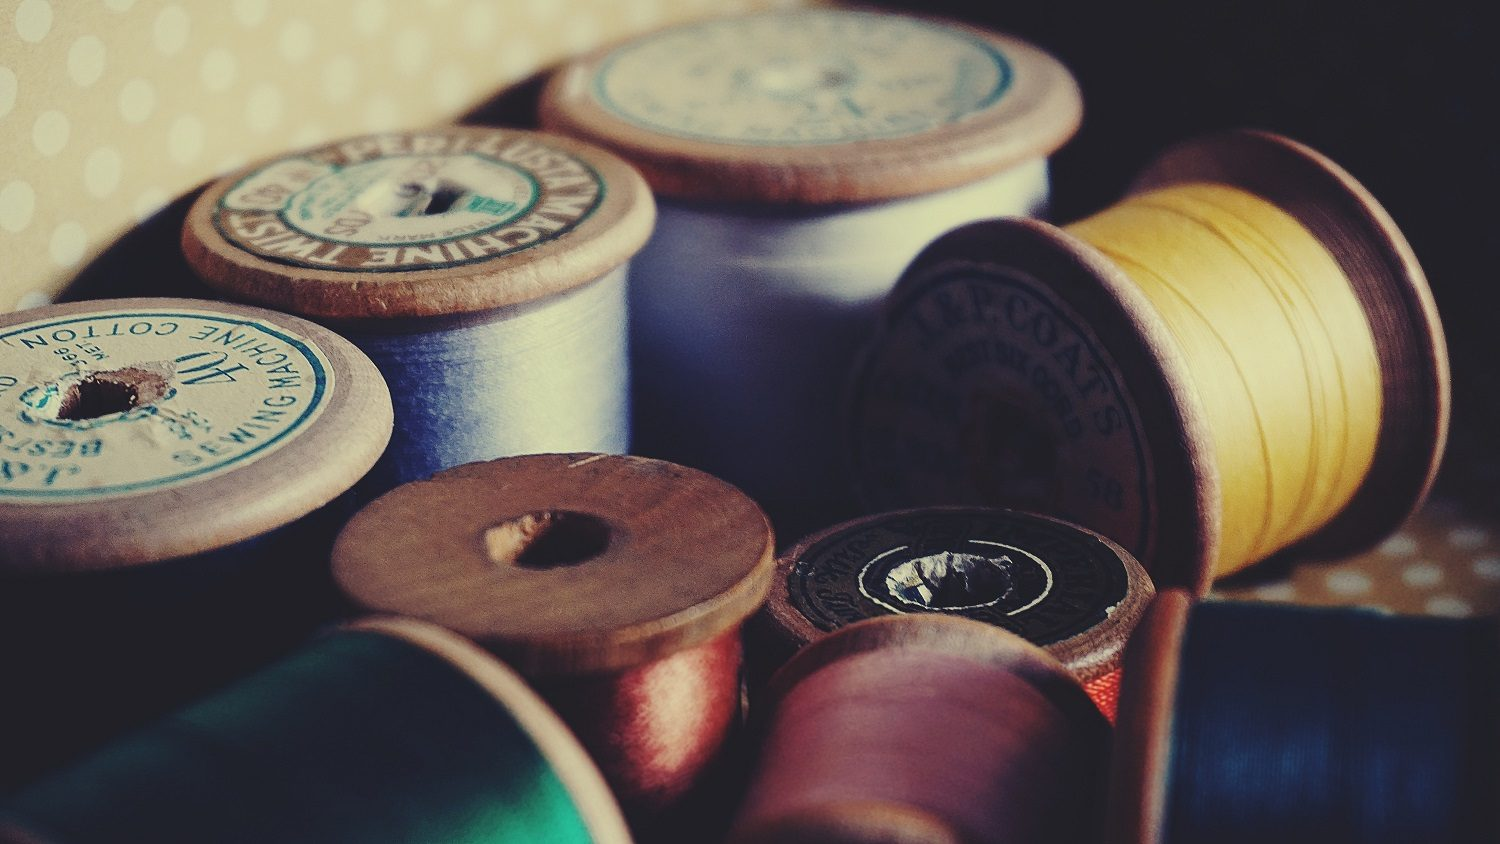 Several spools of thread